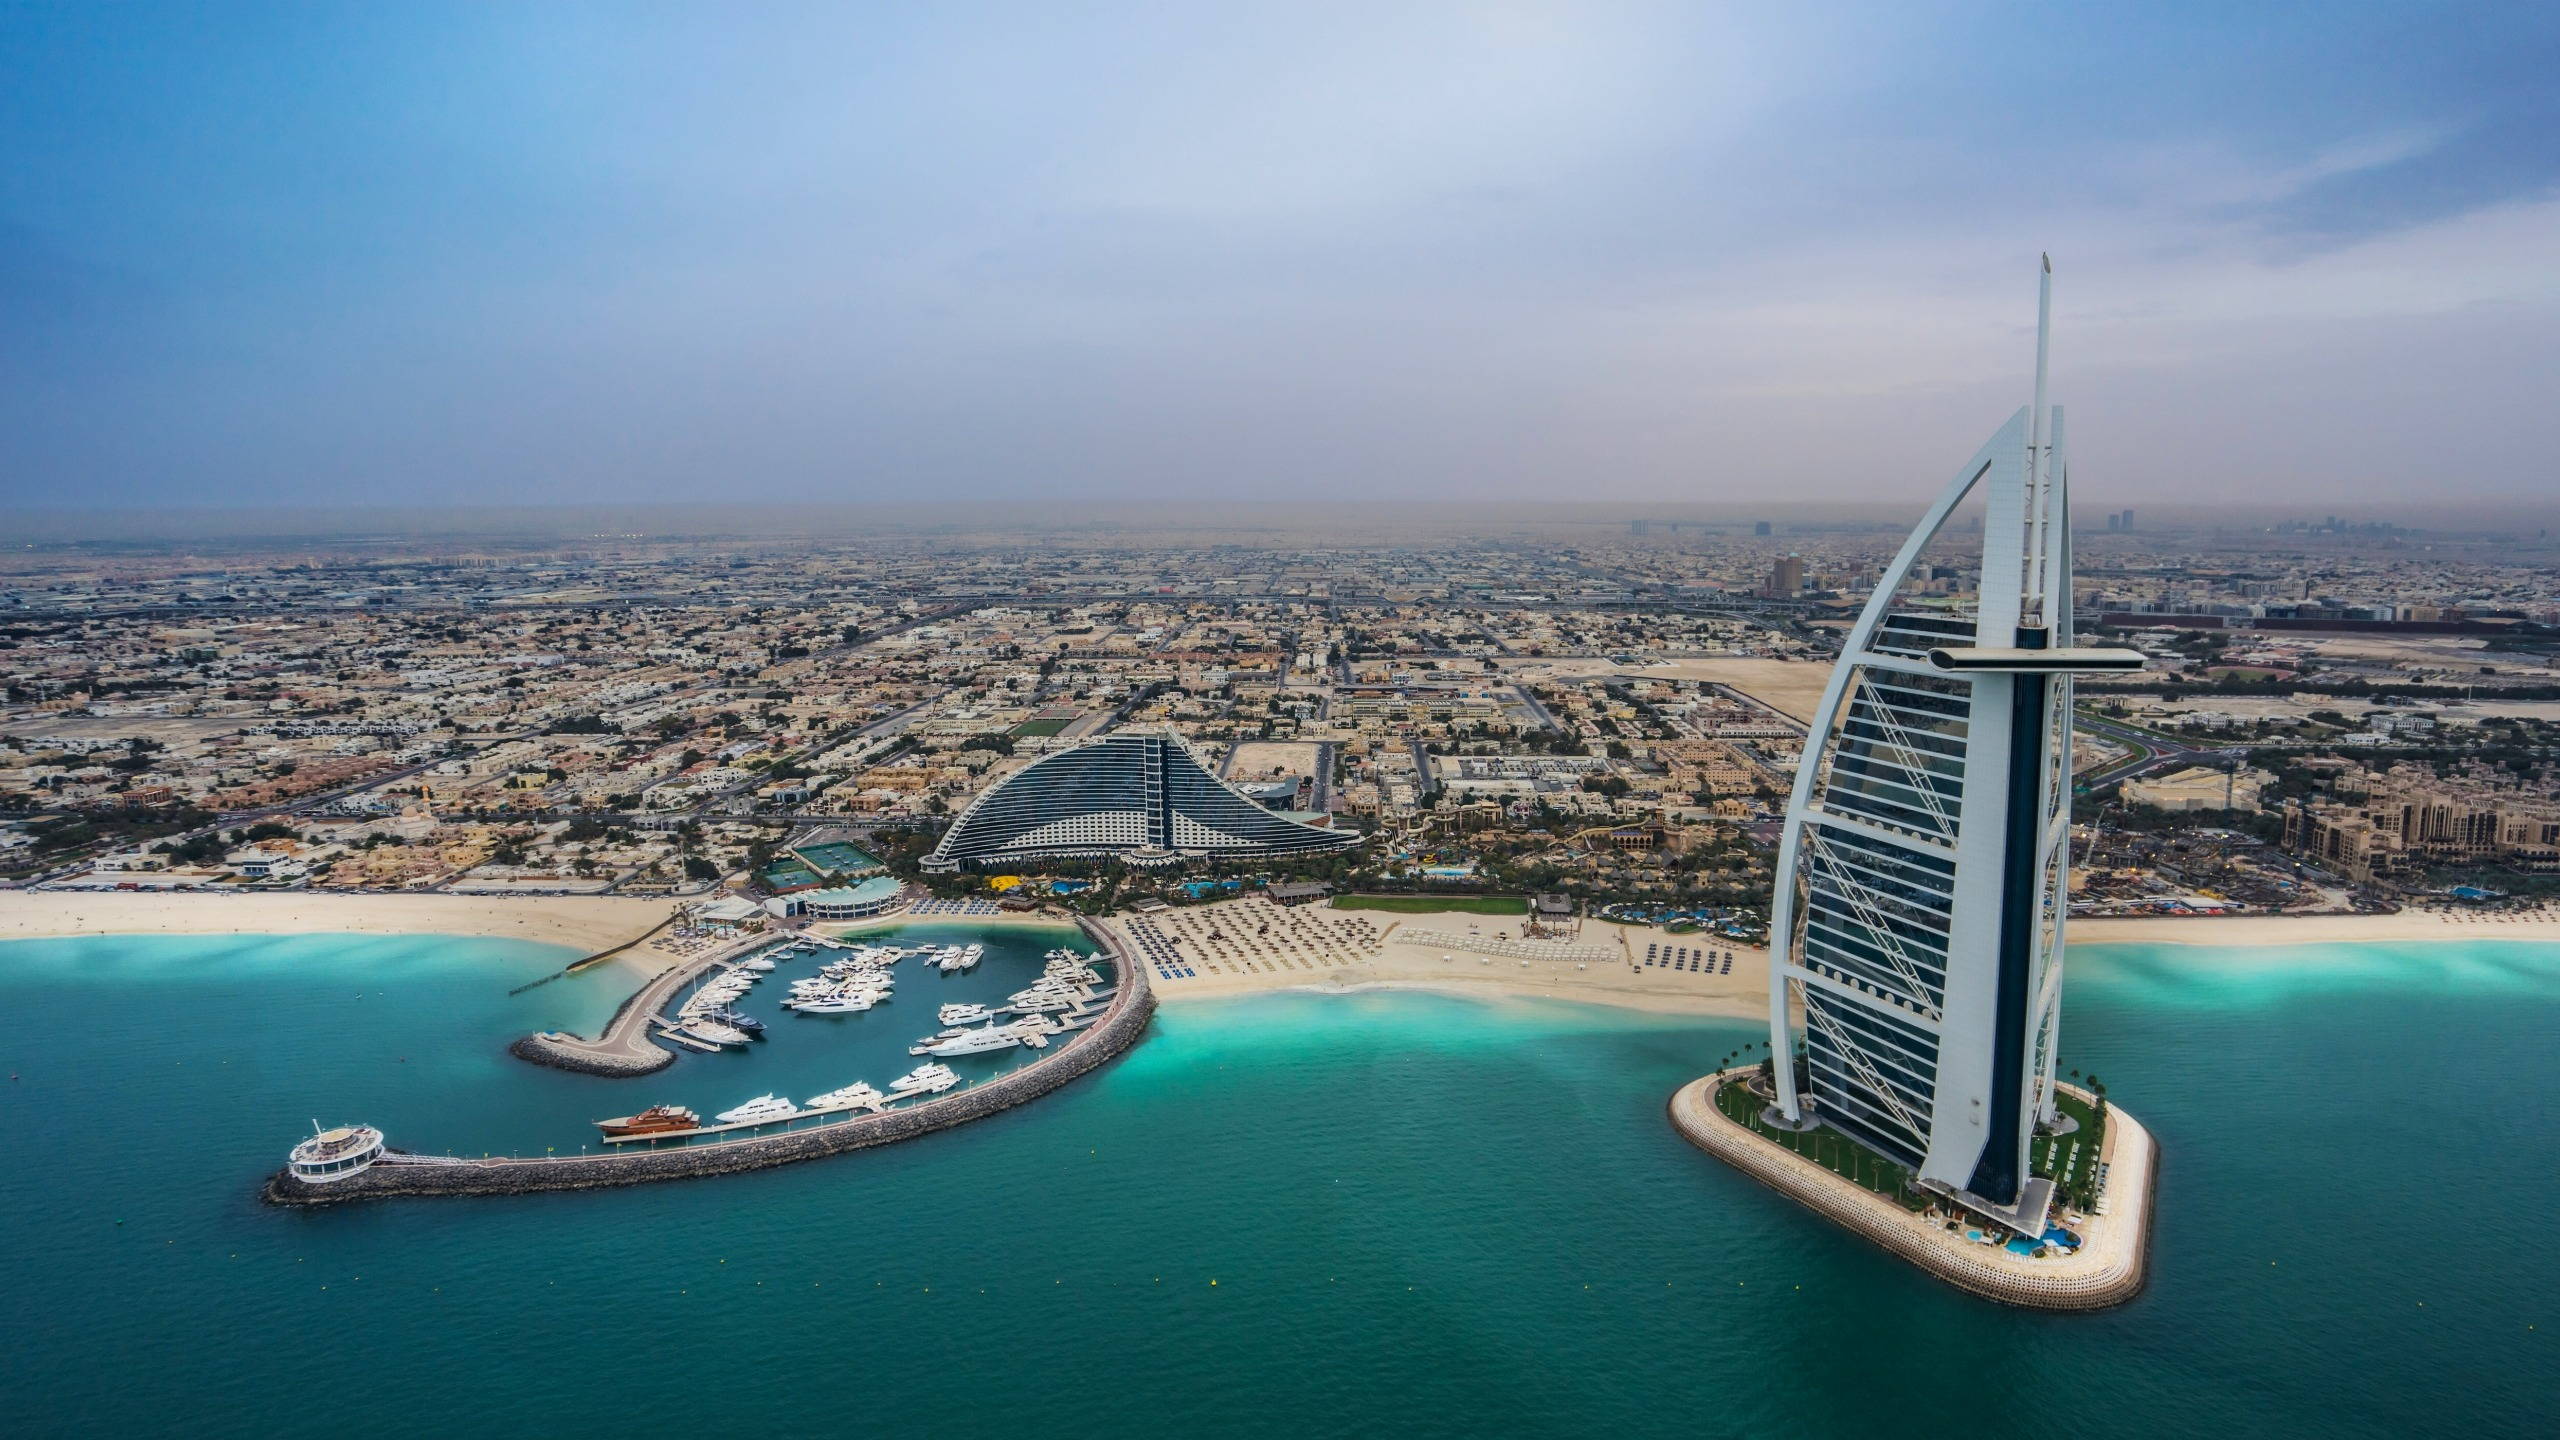 21 burj al arab hd wallpapers | background images - wallpaper abyss